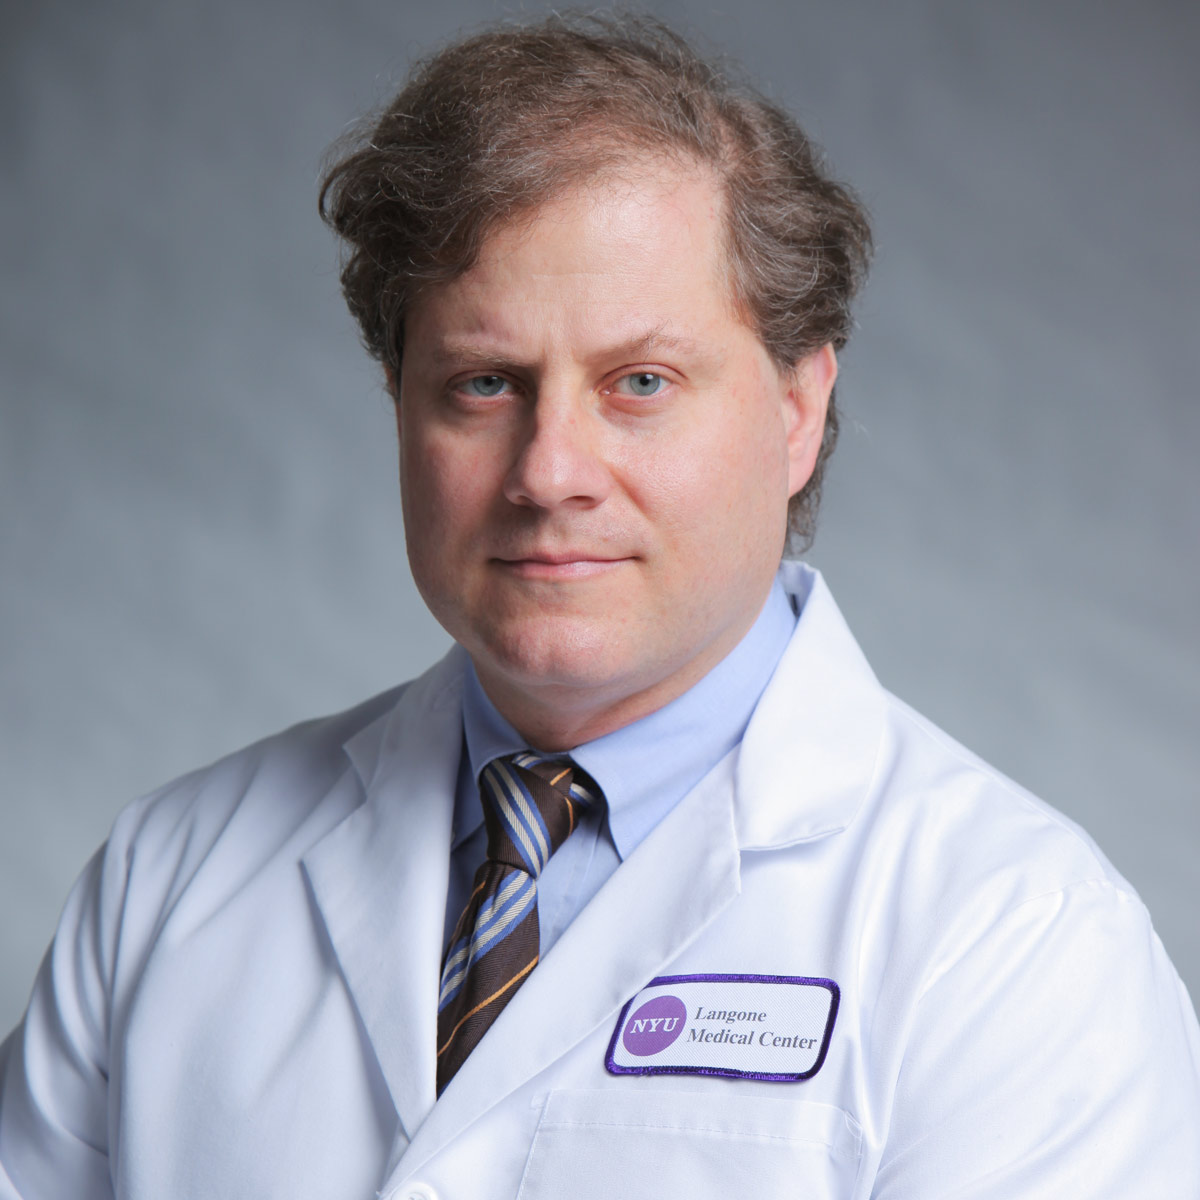 Steven M. Cohen,DO. General Surgery, Surgical Oncology, Critical Care Surgery